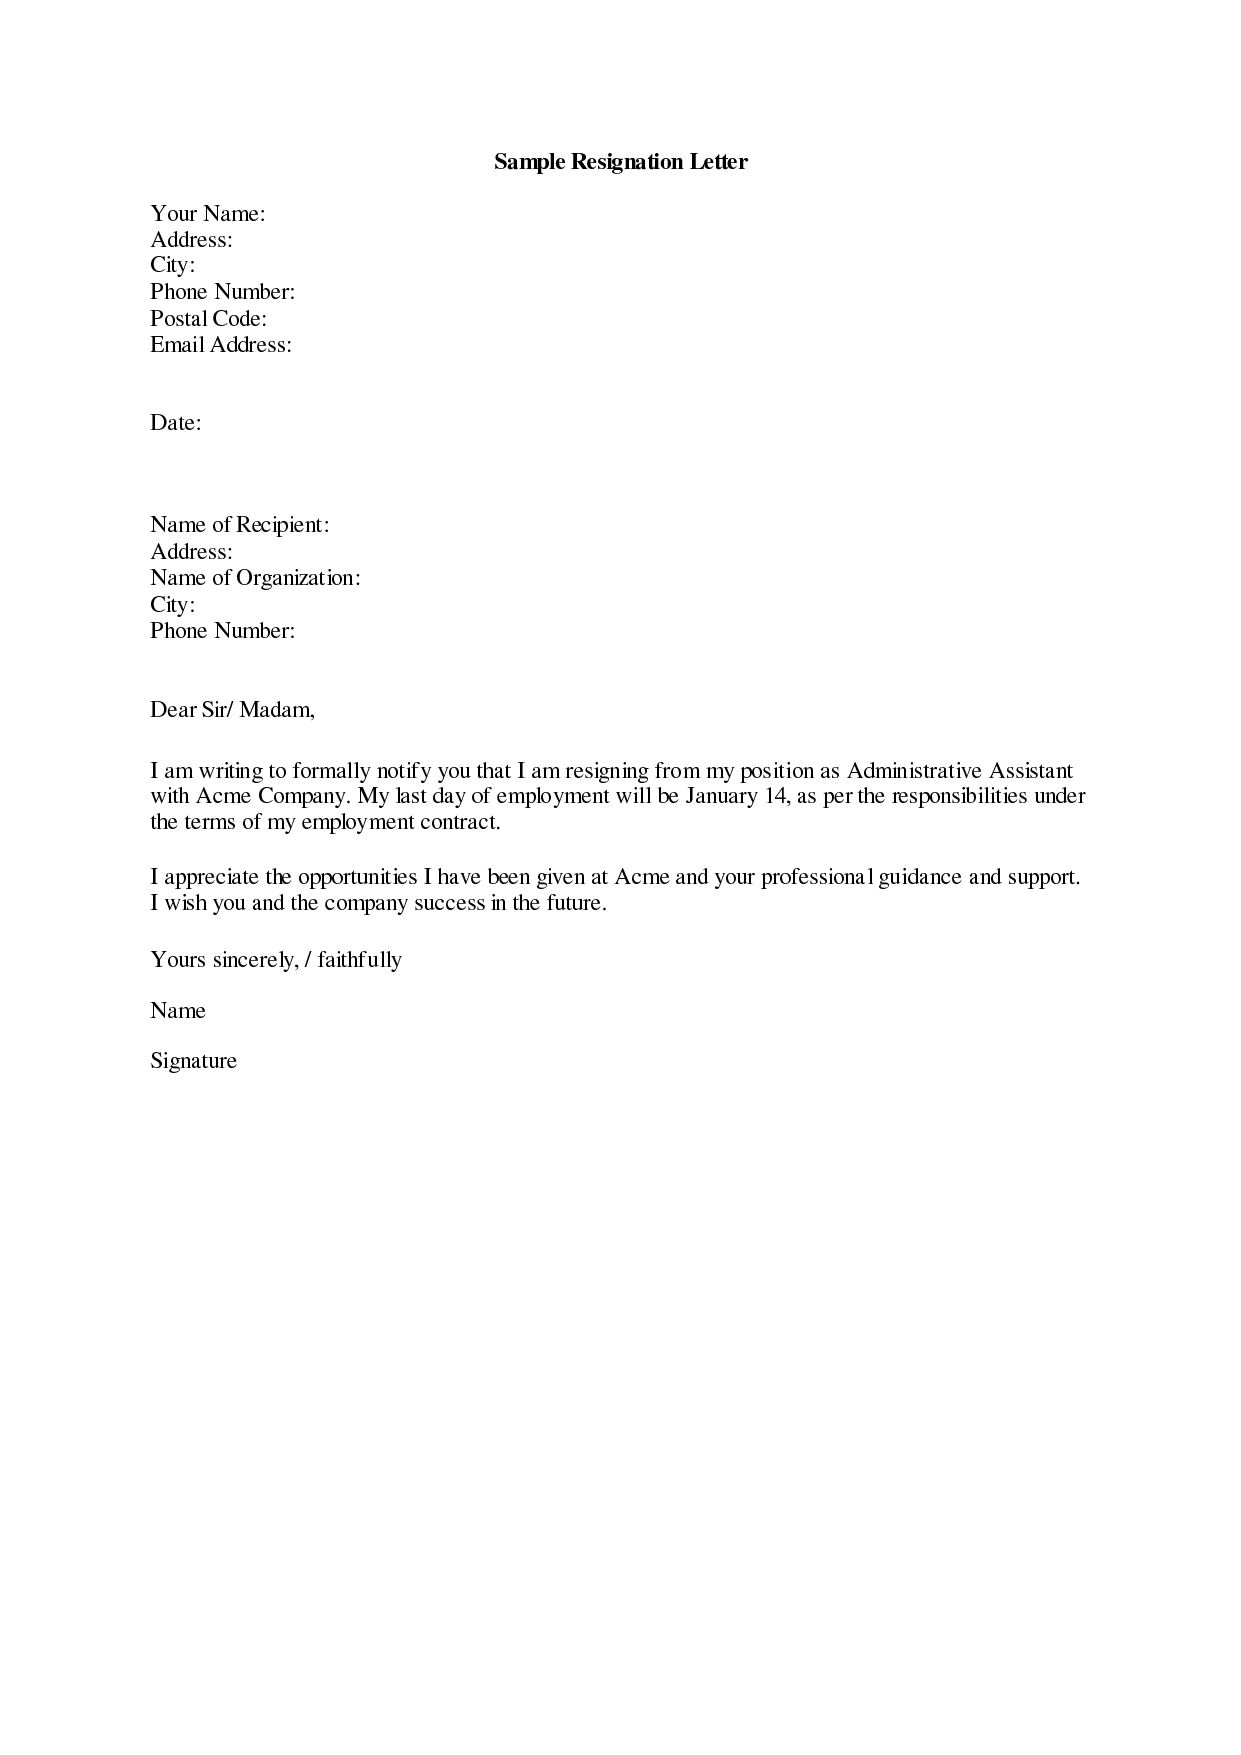 Resignation Letter sample with Short Notice Resignation Letter